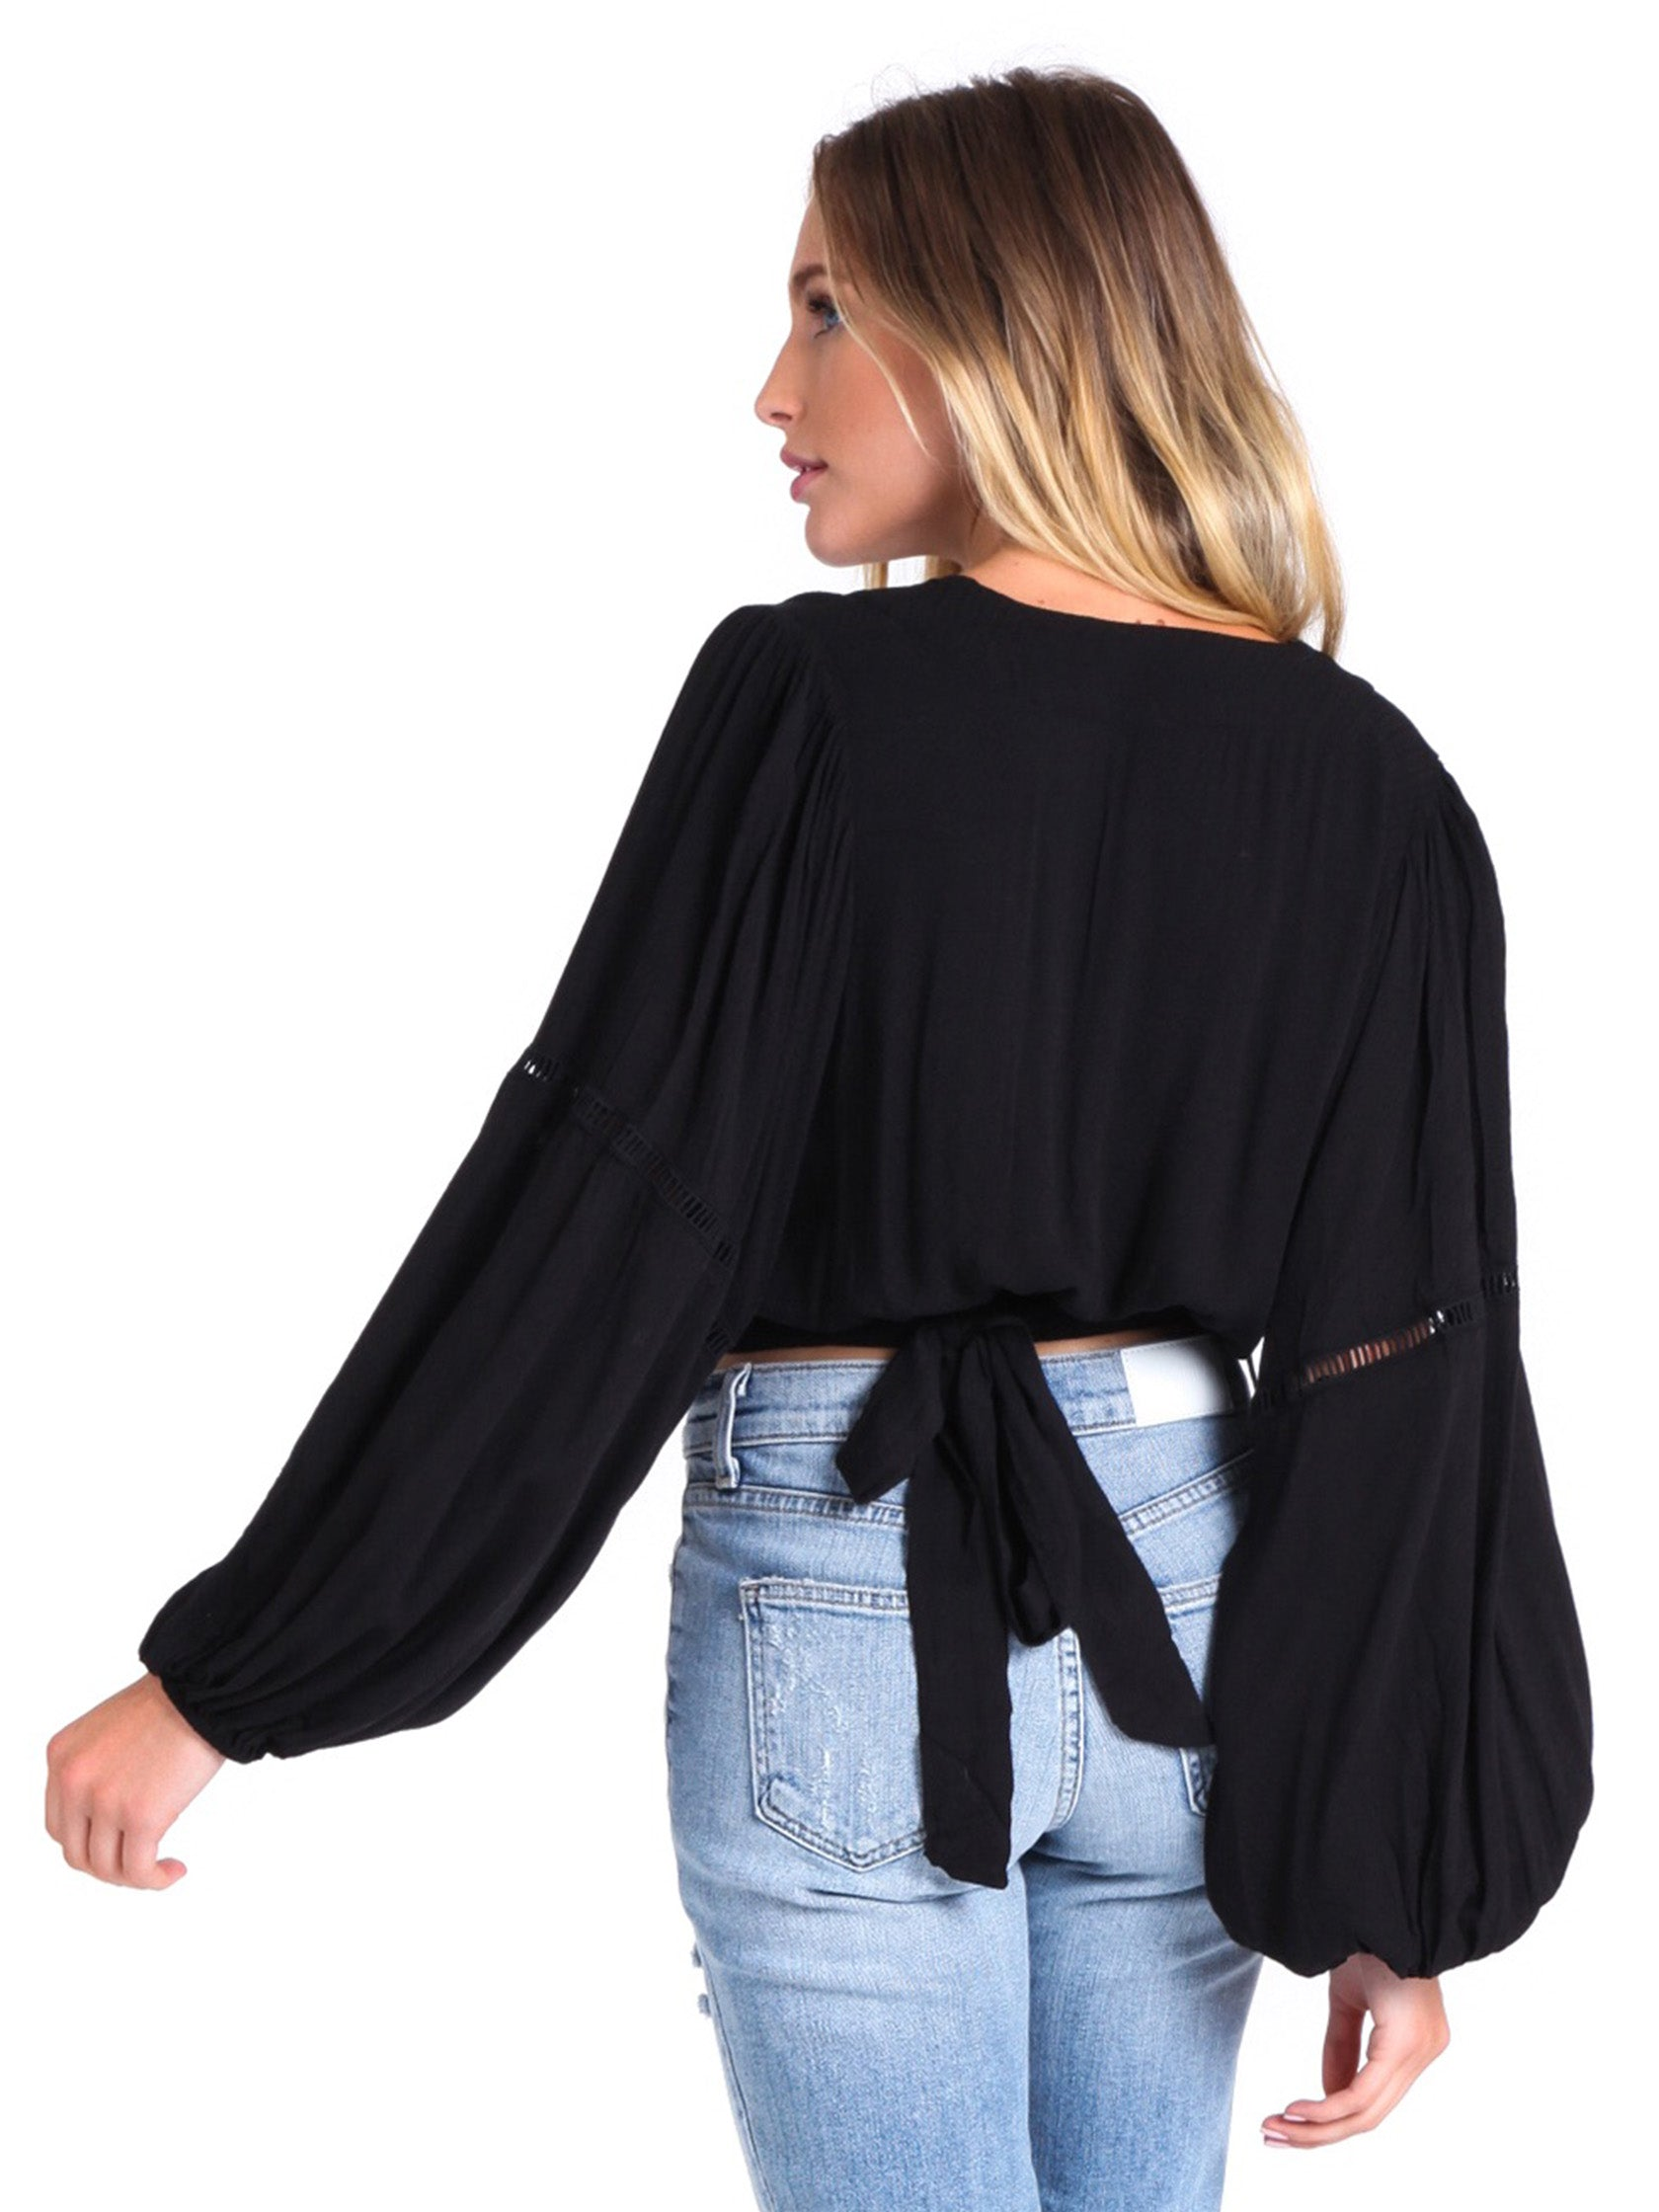 Women outfit in a top rental from Free People called Dream Girl Wrap Top